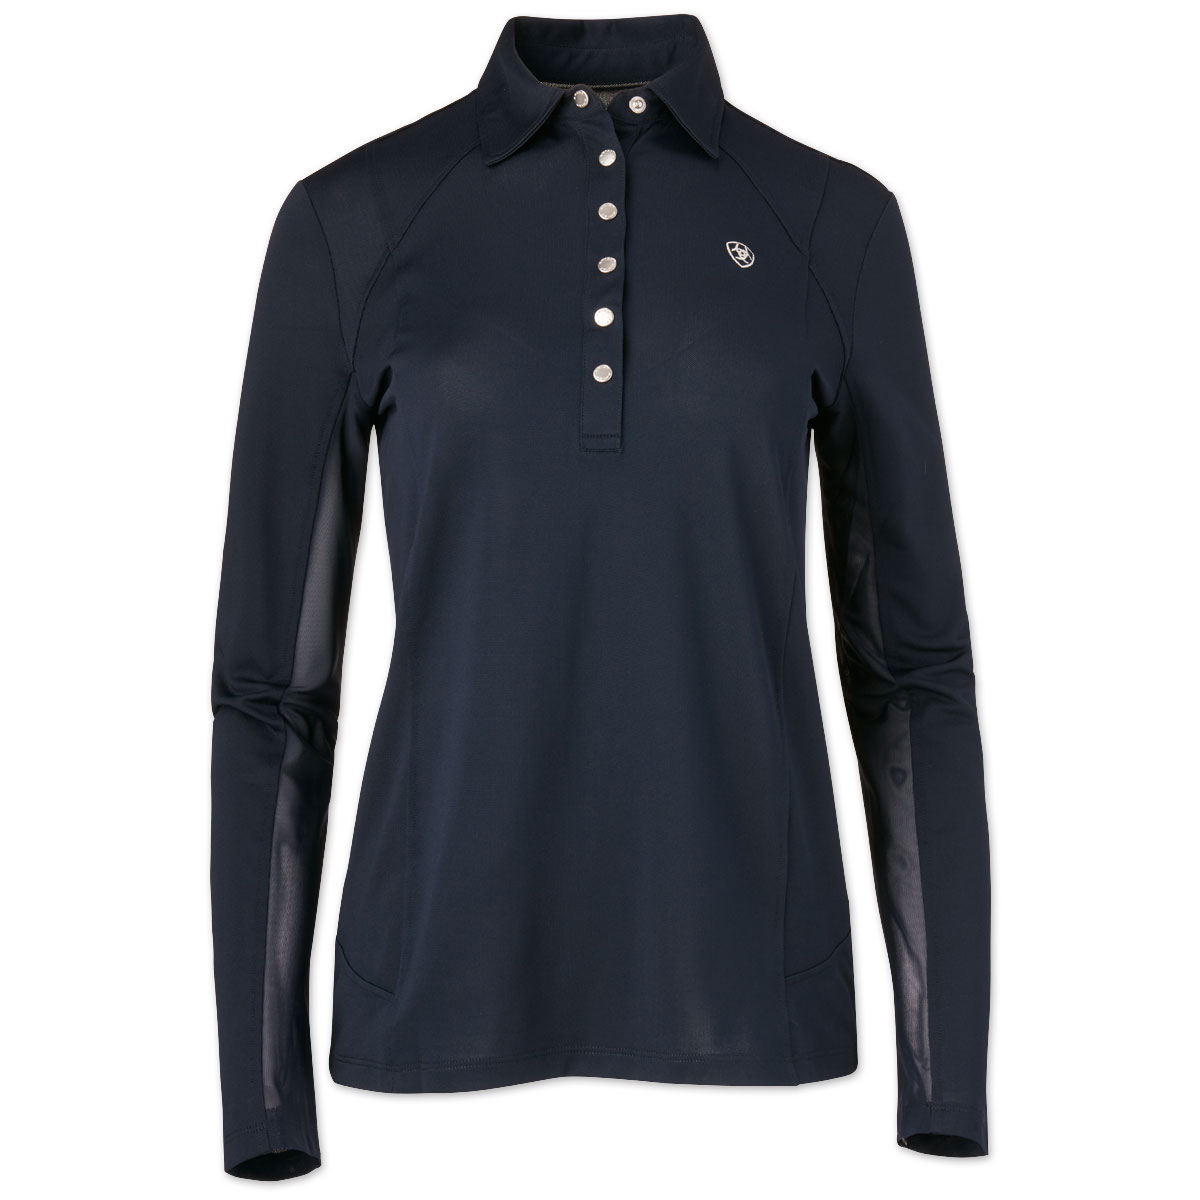 Ariat Sunstopper Longsleeve Polo